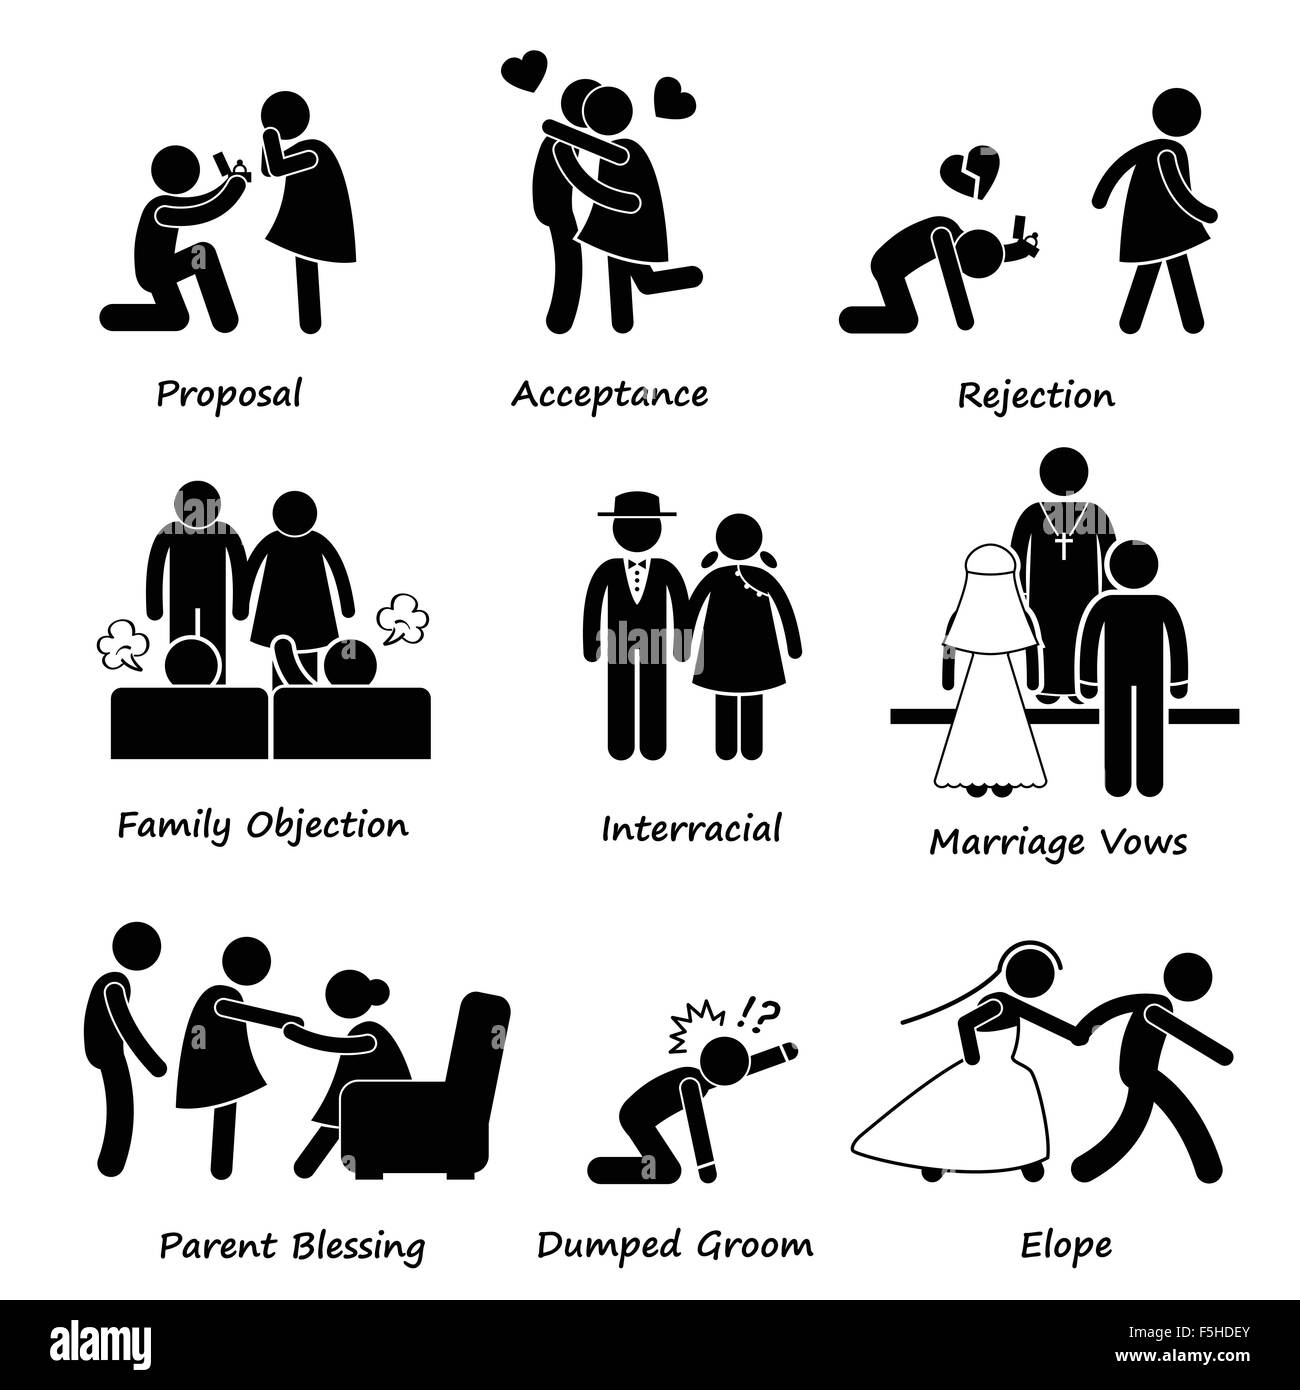 Love Couple Marriage Problem difficulty Stick Figure Pictogram Icon Cliparts - Stock Vector